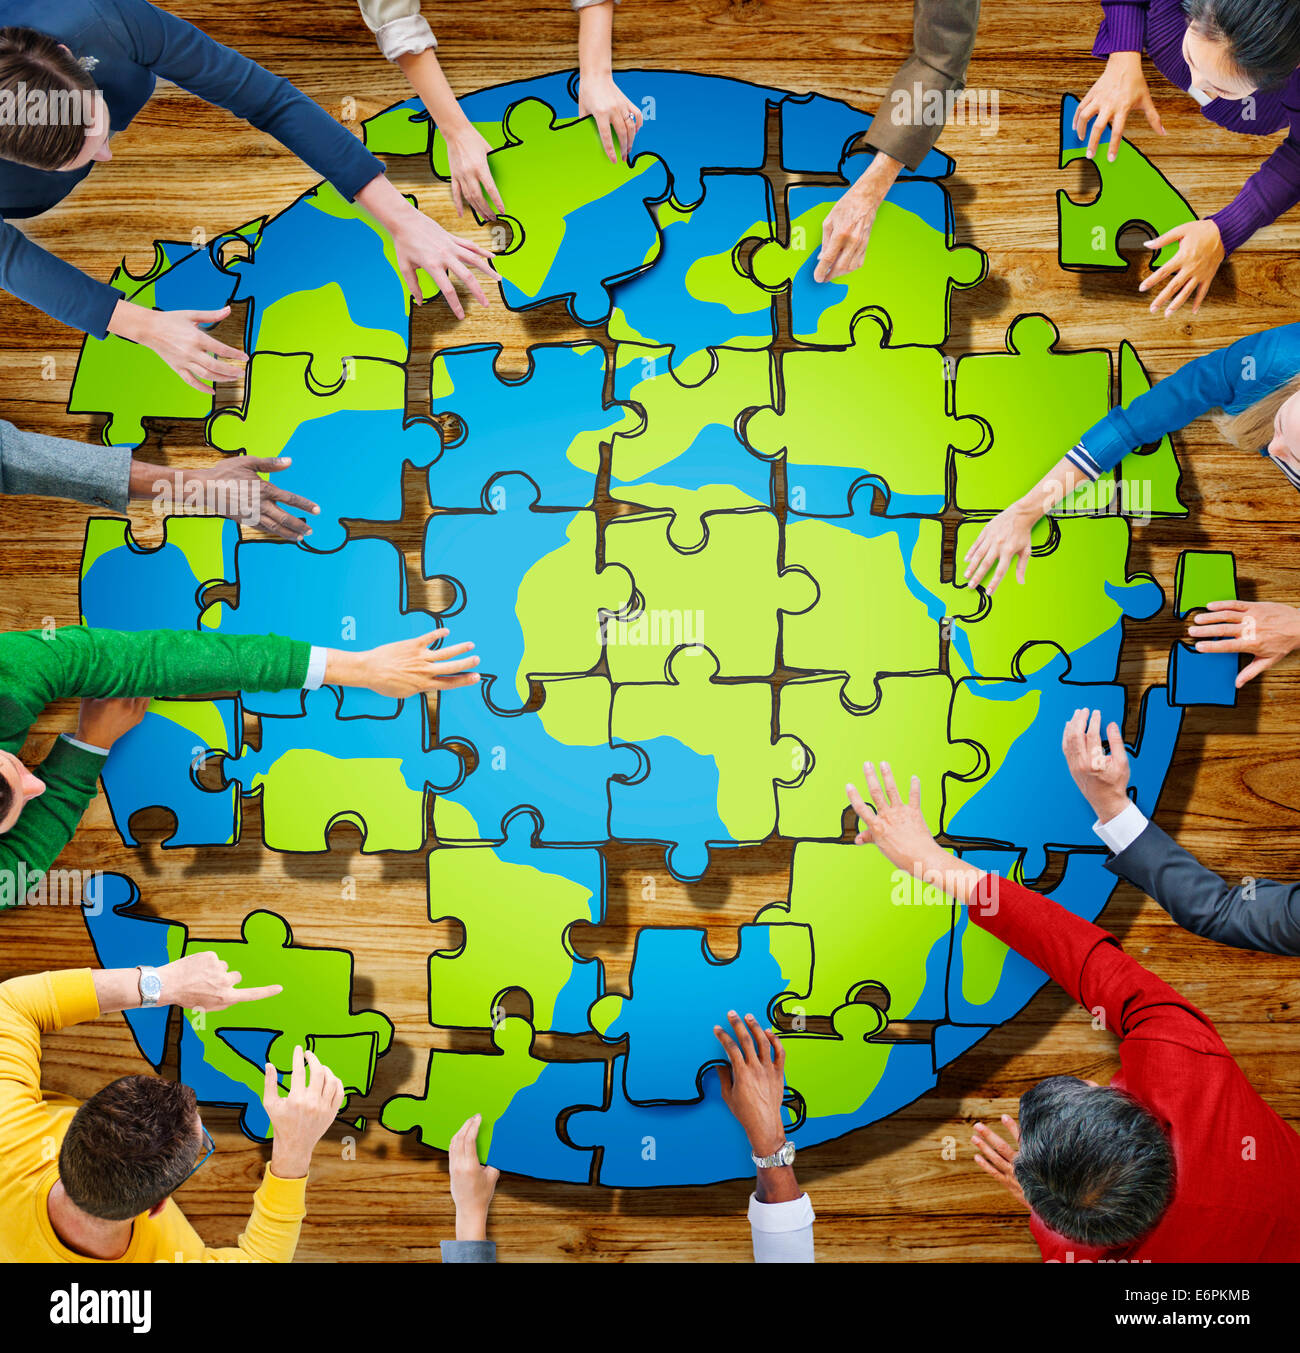 Globe jigsaw stock photos globe jigsaw stock images alamy people with jigsaw puzzle forming globe in photo and illustration stock image gumiabroncs Image collections